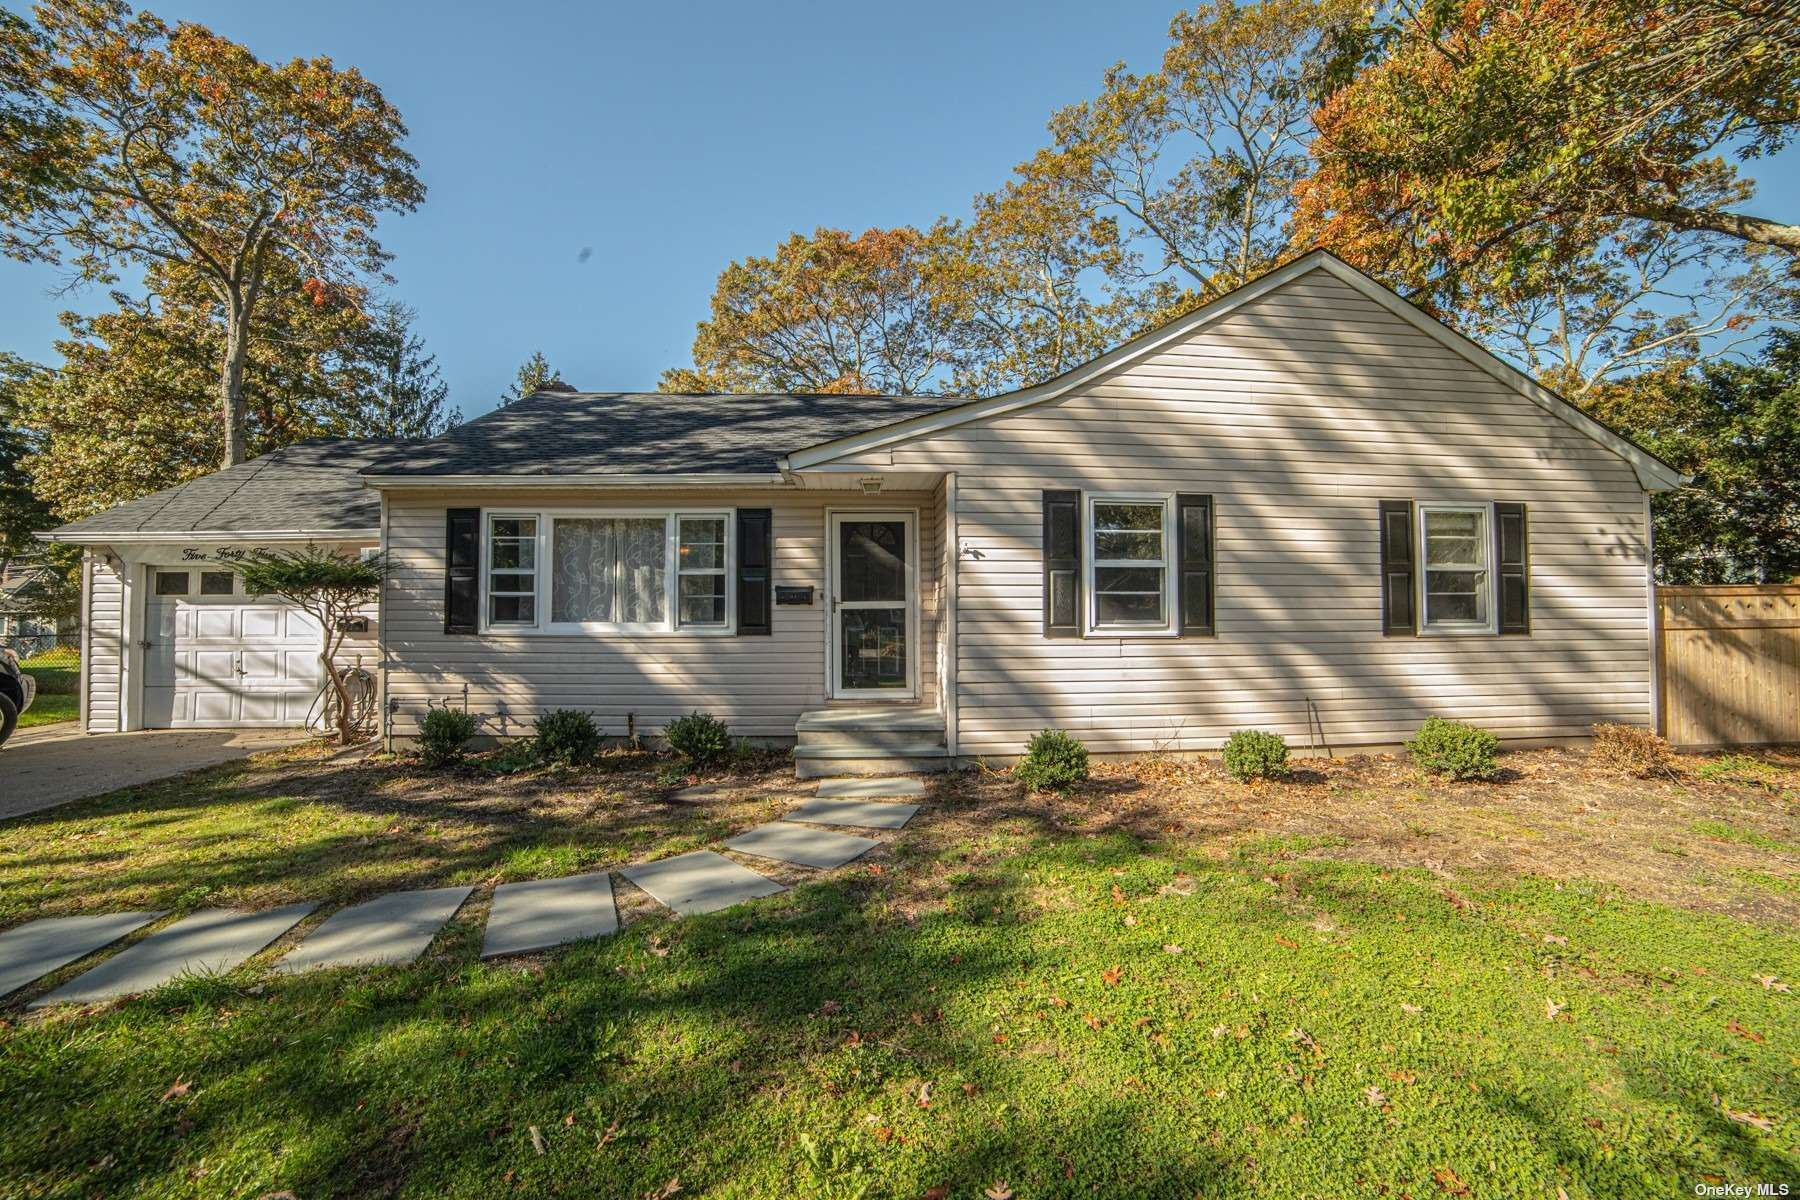 Brightwaters, NY 11718